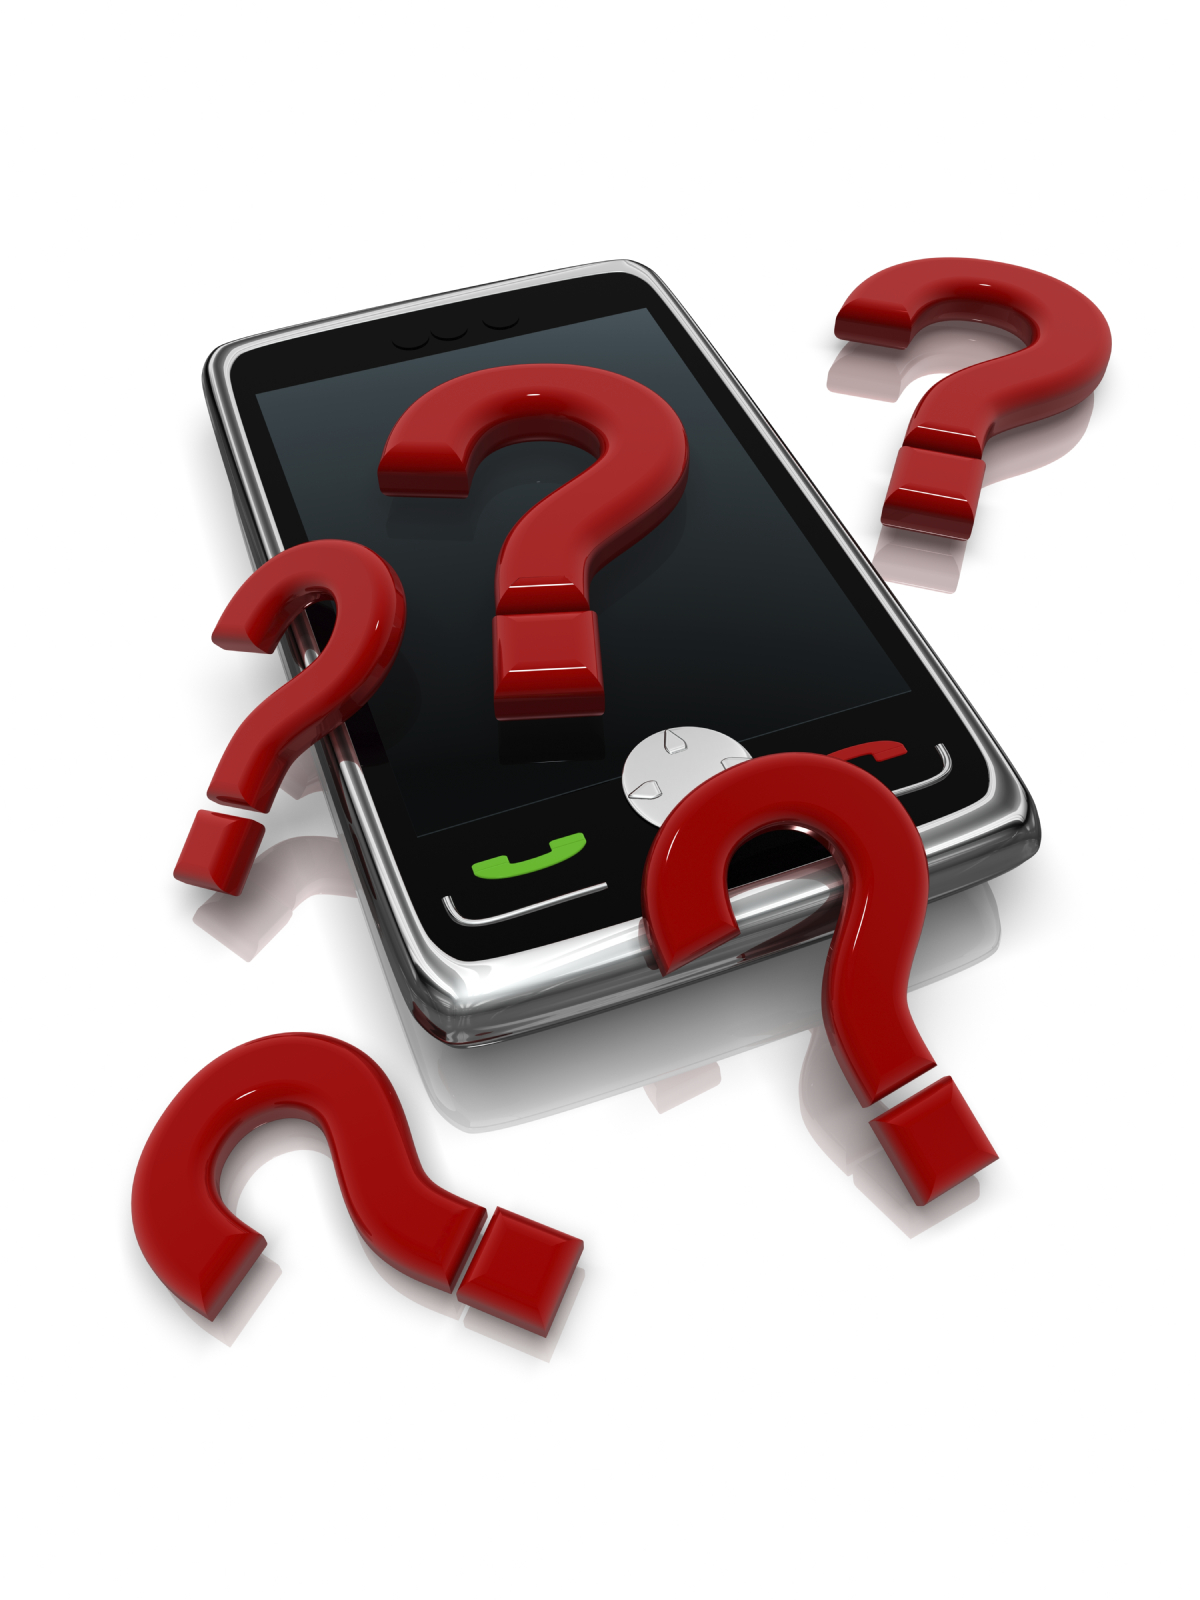 EWG's Guide to Safer Cell Phone Use: Cellphone FAQs